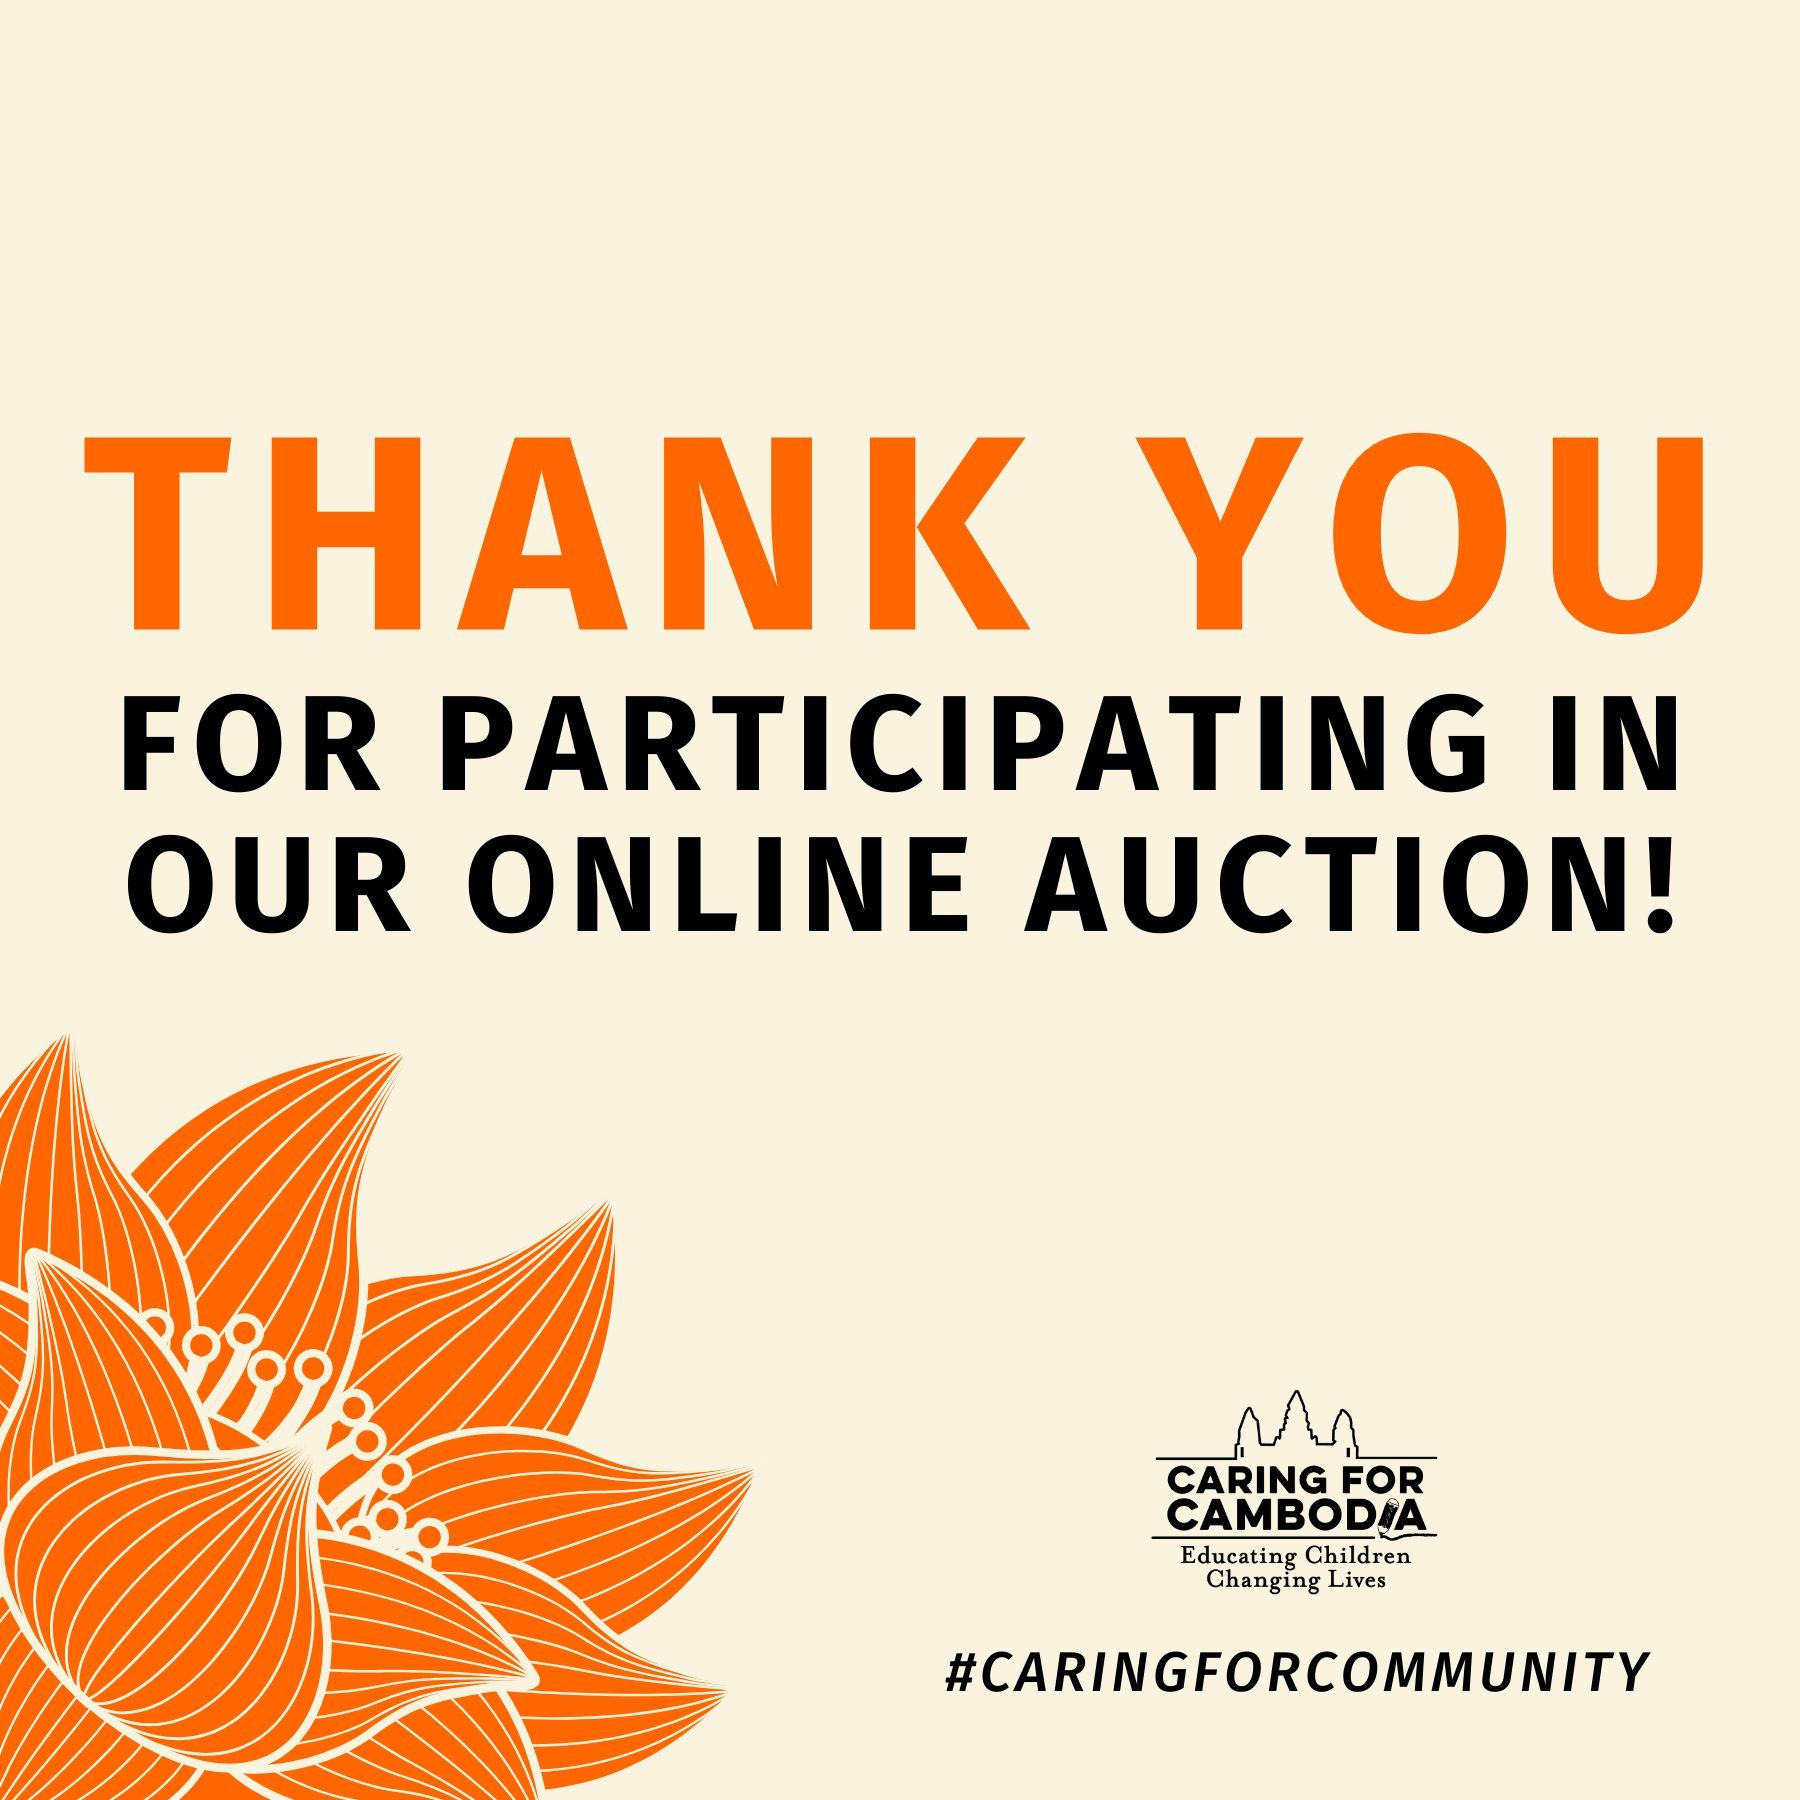 CFC's First Ever Online Auction Raises more than $20,000